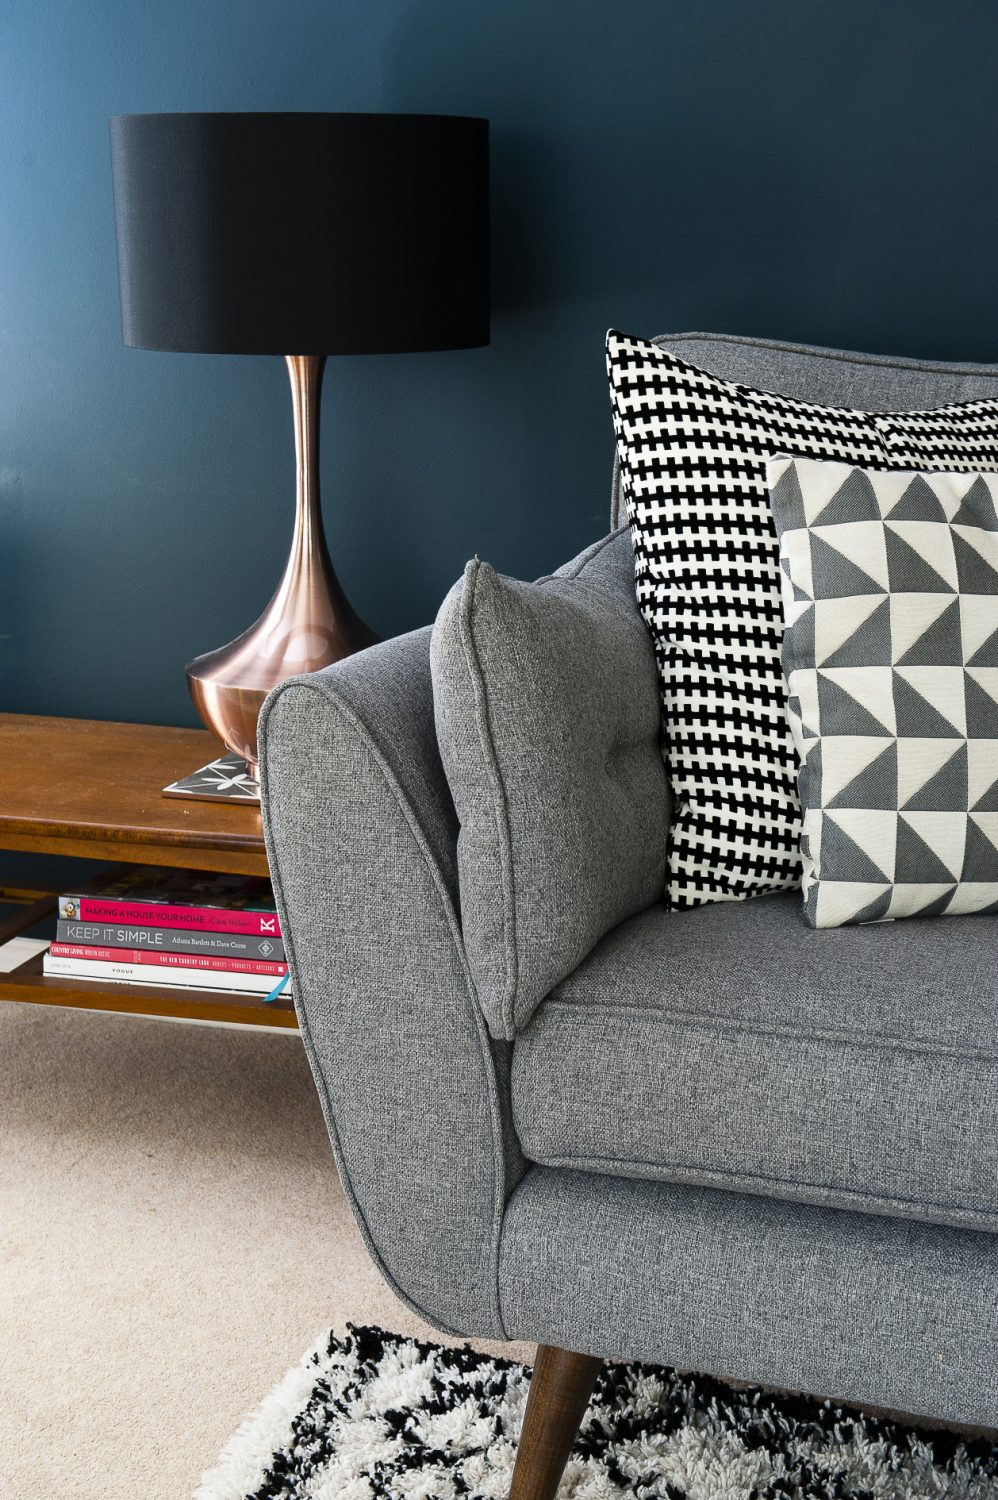 Lucinda has painted her living room in deep, rich Farrow & Ball Hague Blue